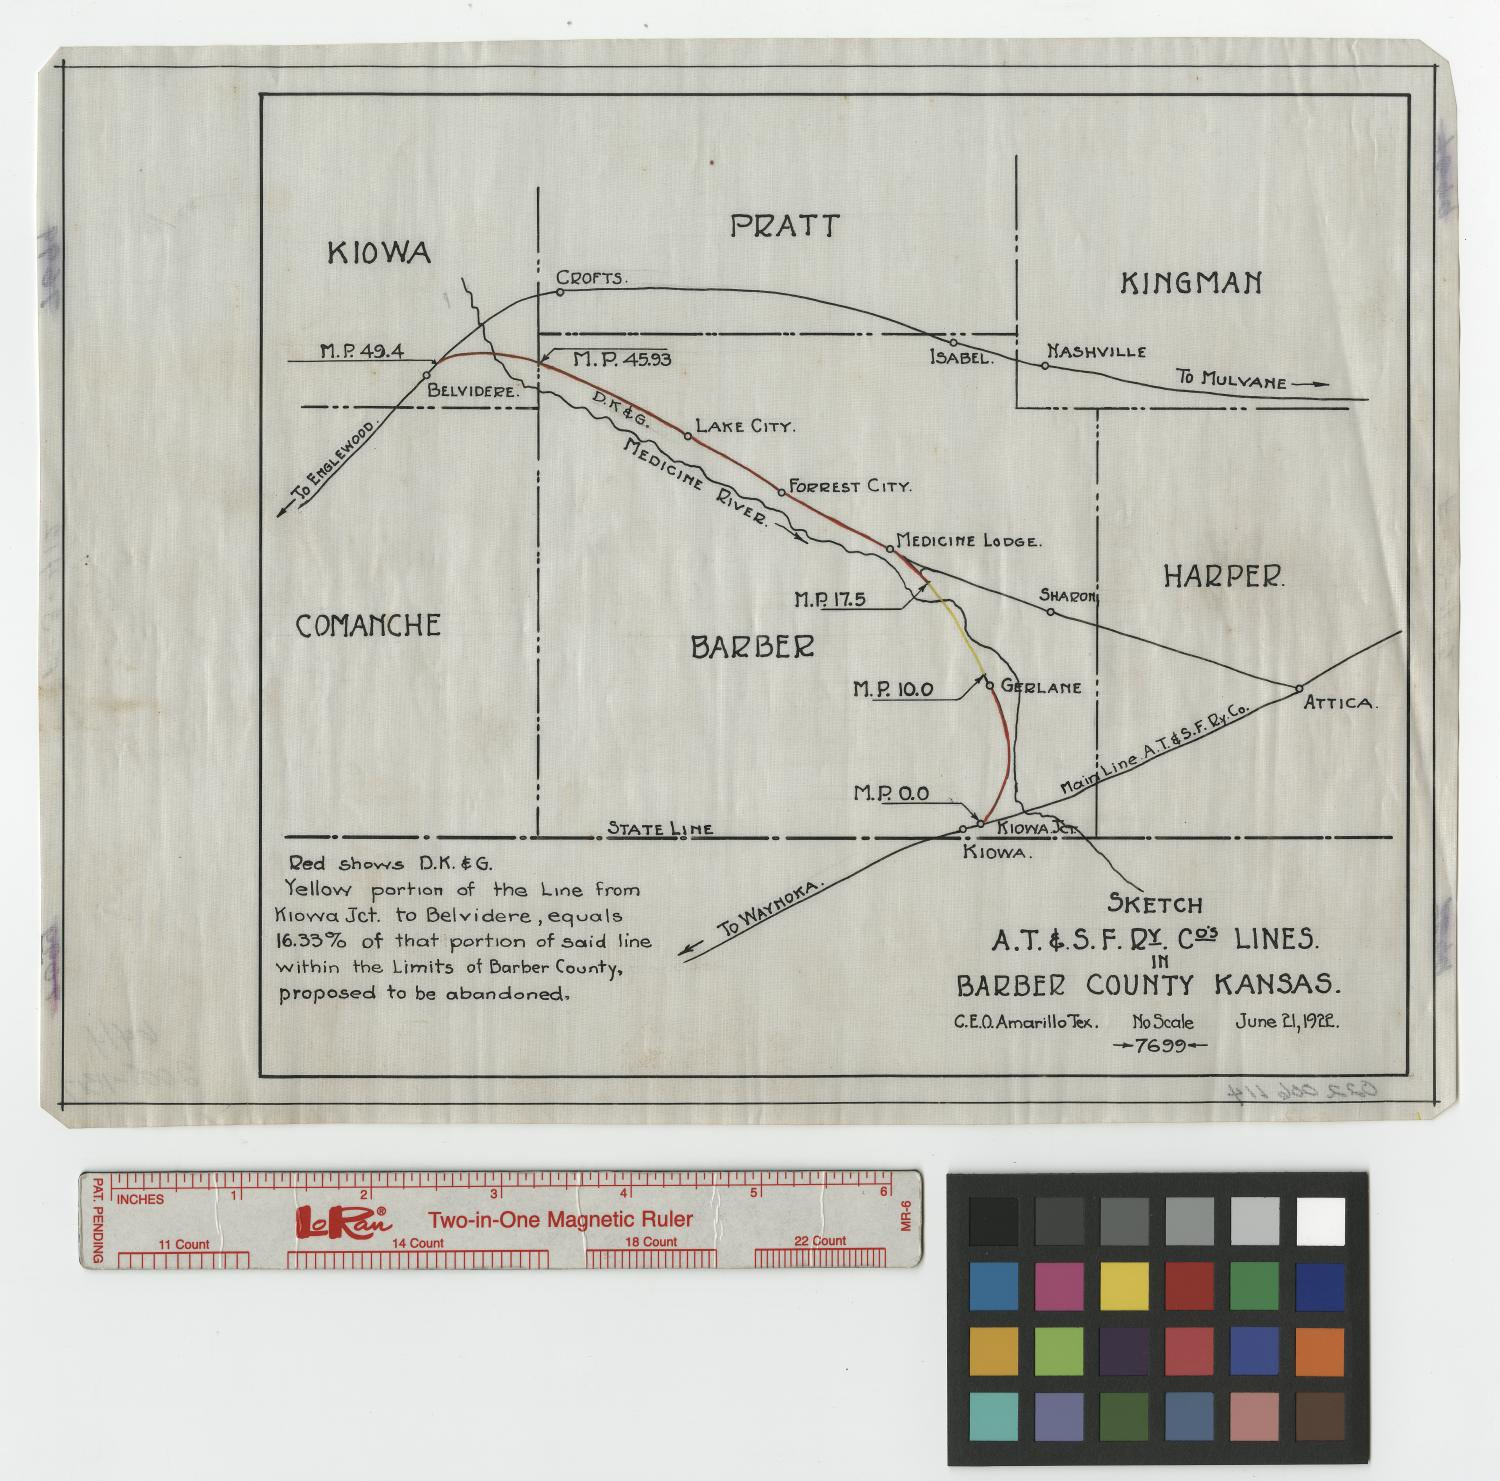 Kansas harper county attica - Co S Lines In Barber County Kansas The Portal To Texas History